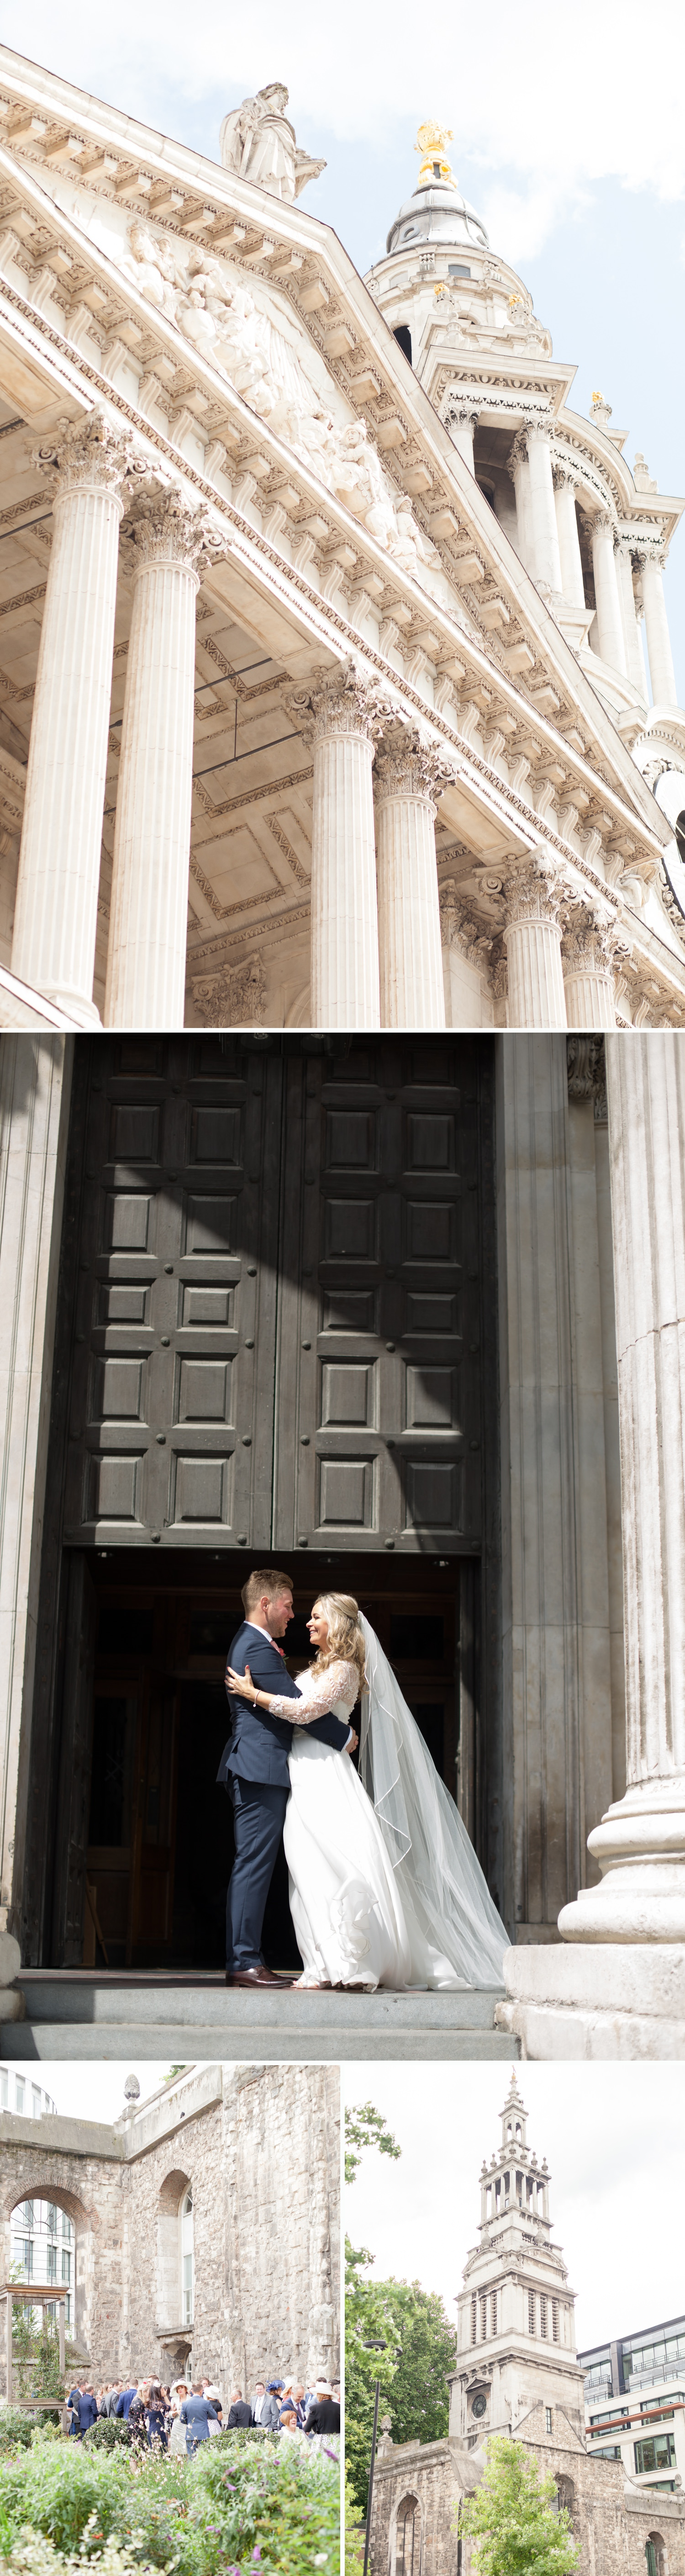 Charlotte & Adam's St. Paul's Cathedral wedding - a bride & groom by the steps of St. Paul's